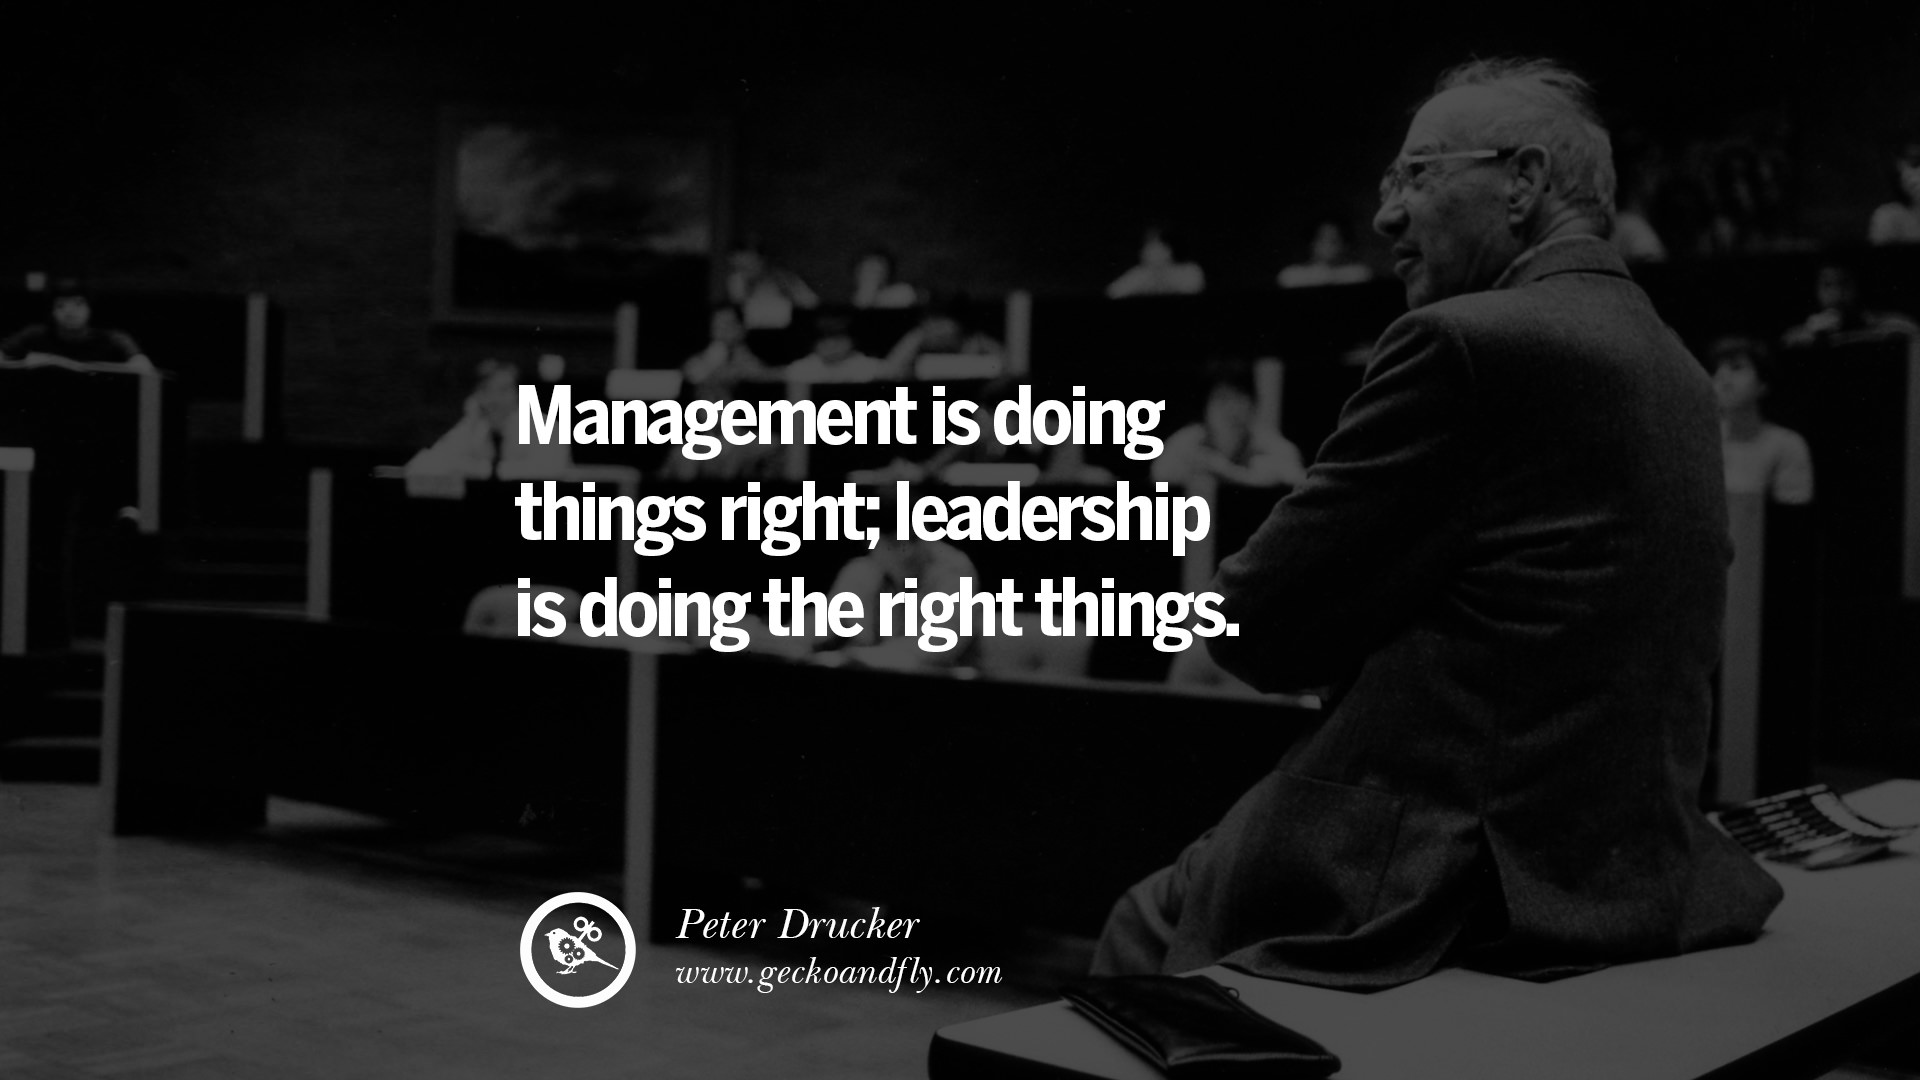 Motivational Quotations 18 Uplifting And Motivational Quotes On Management Leadership